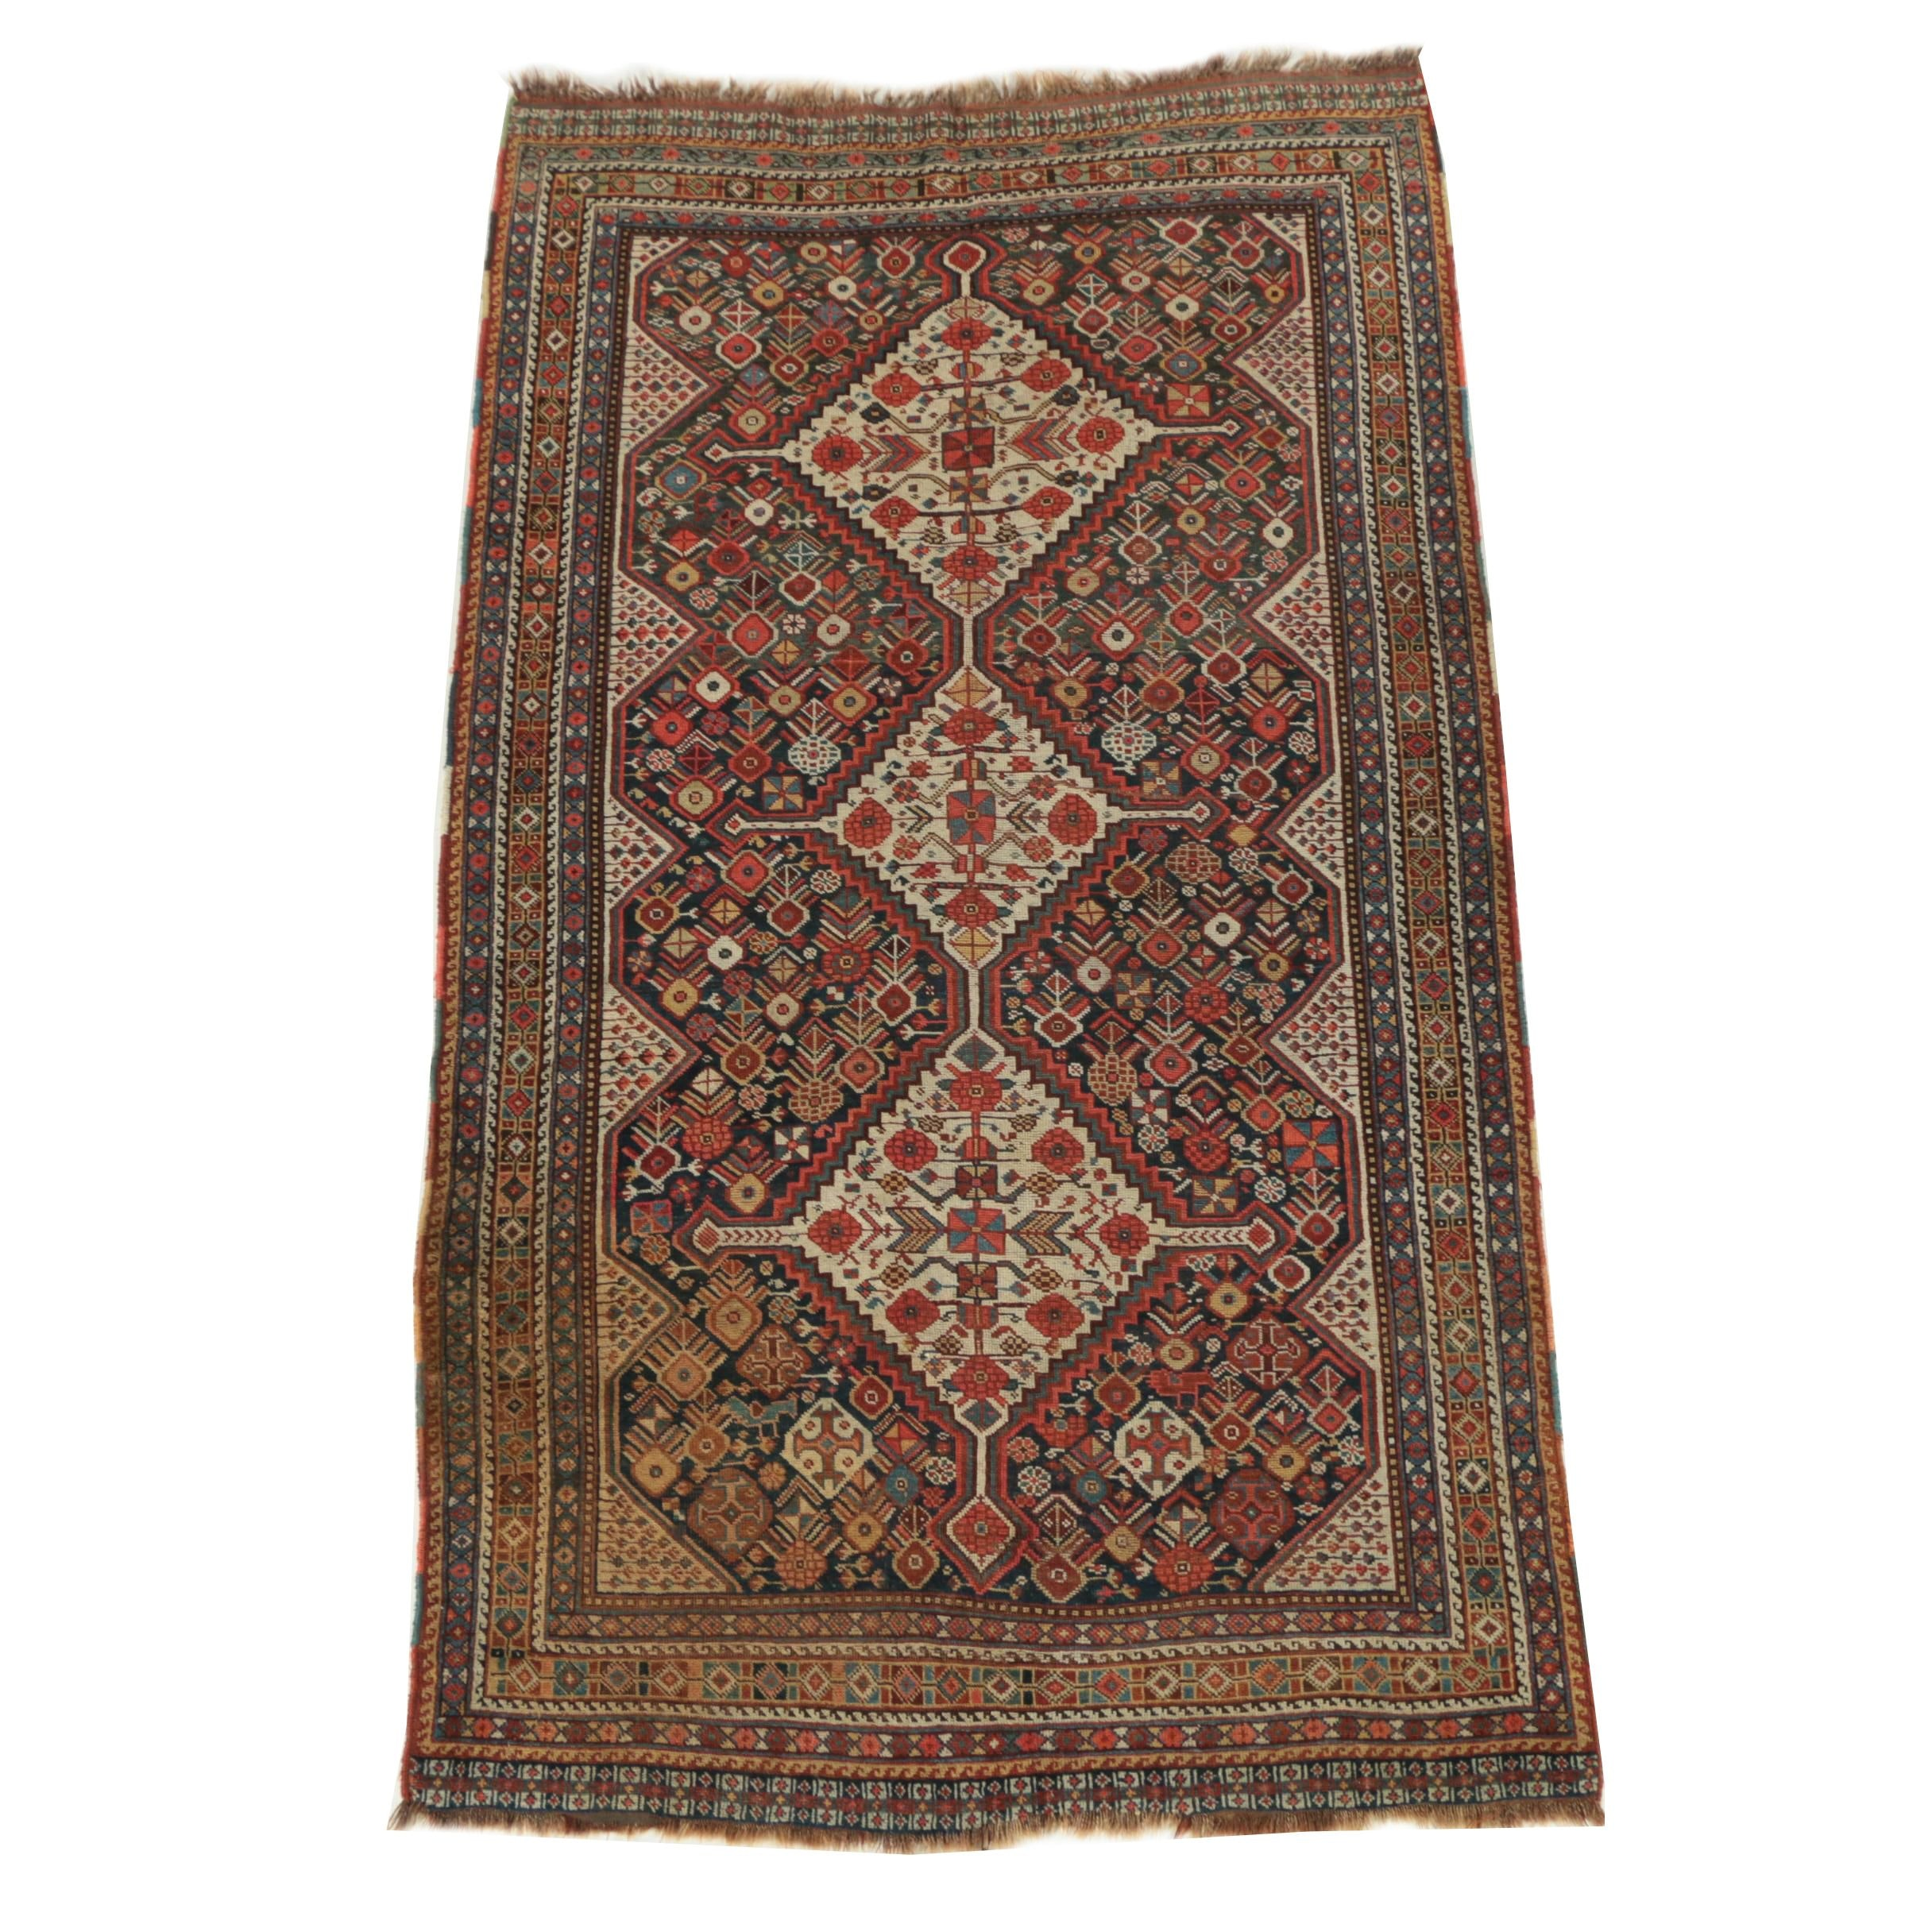 Vintage Hand-Knotted Persian Khamseh Wool Area Rug